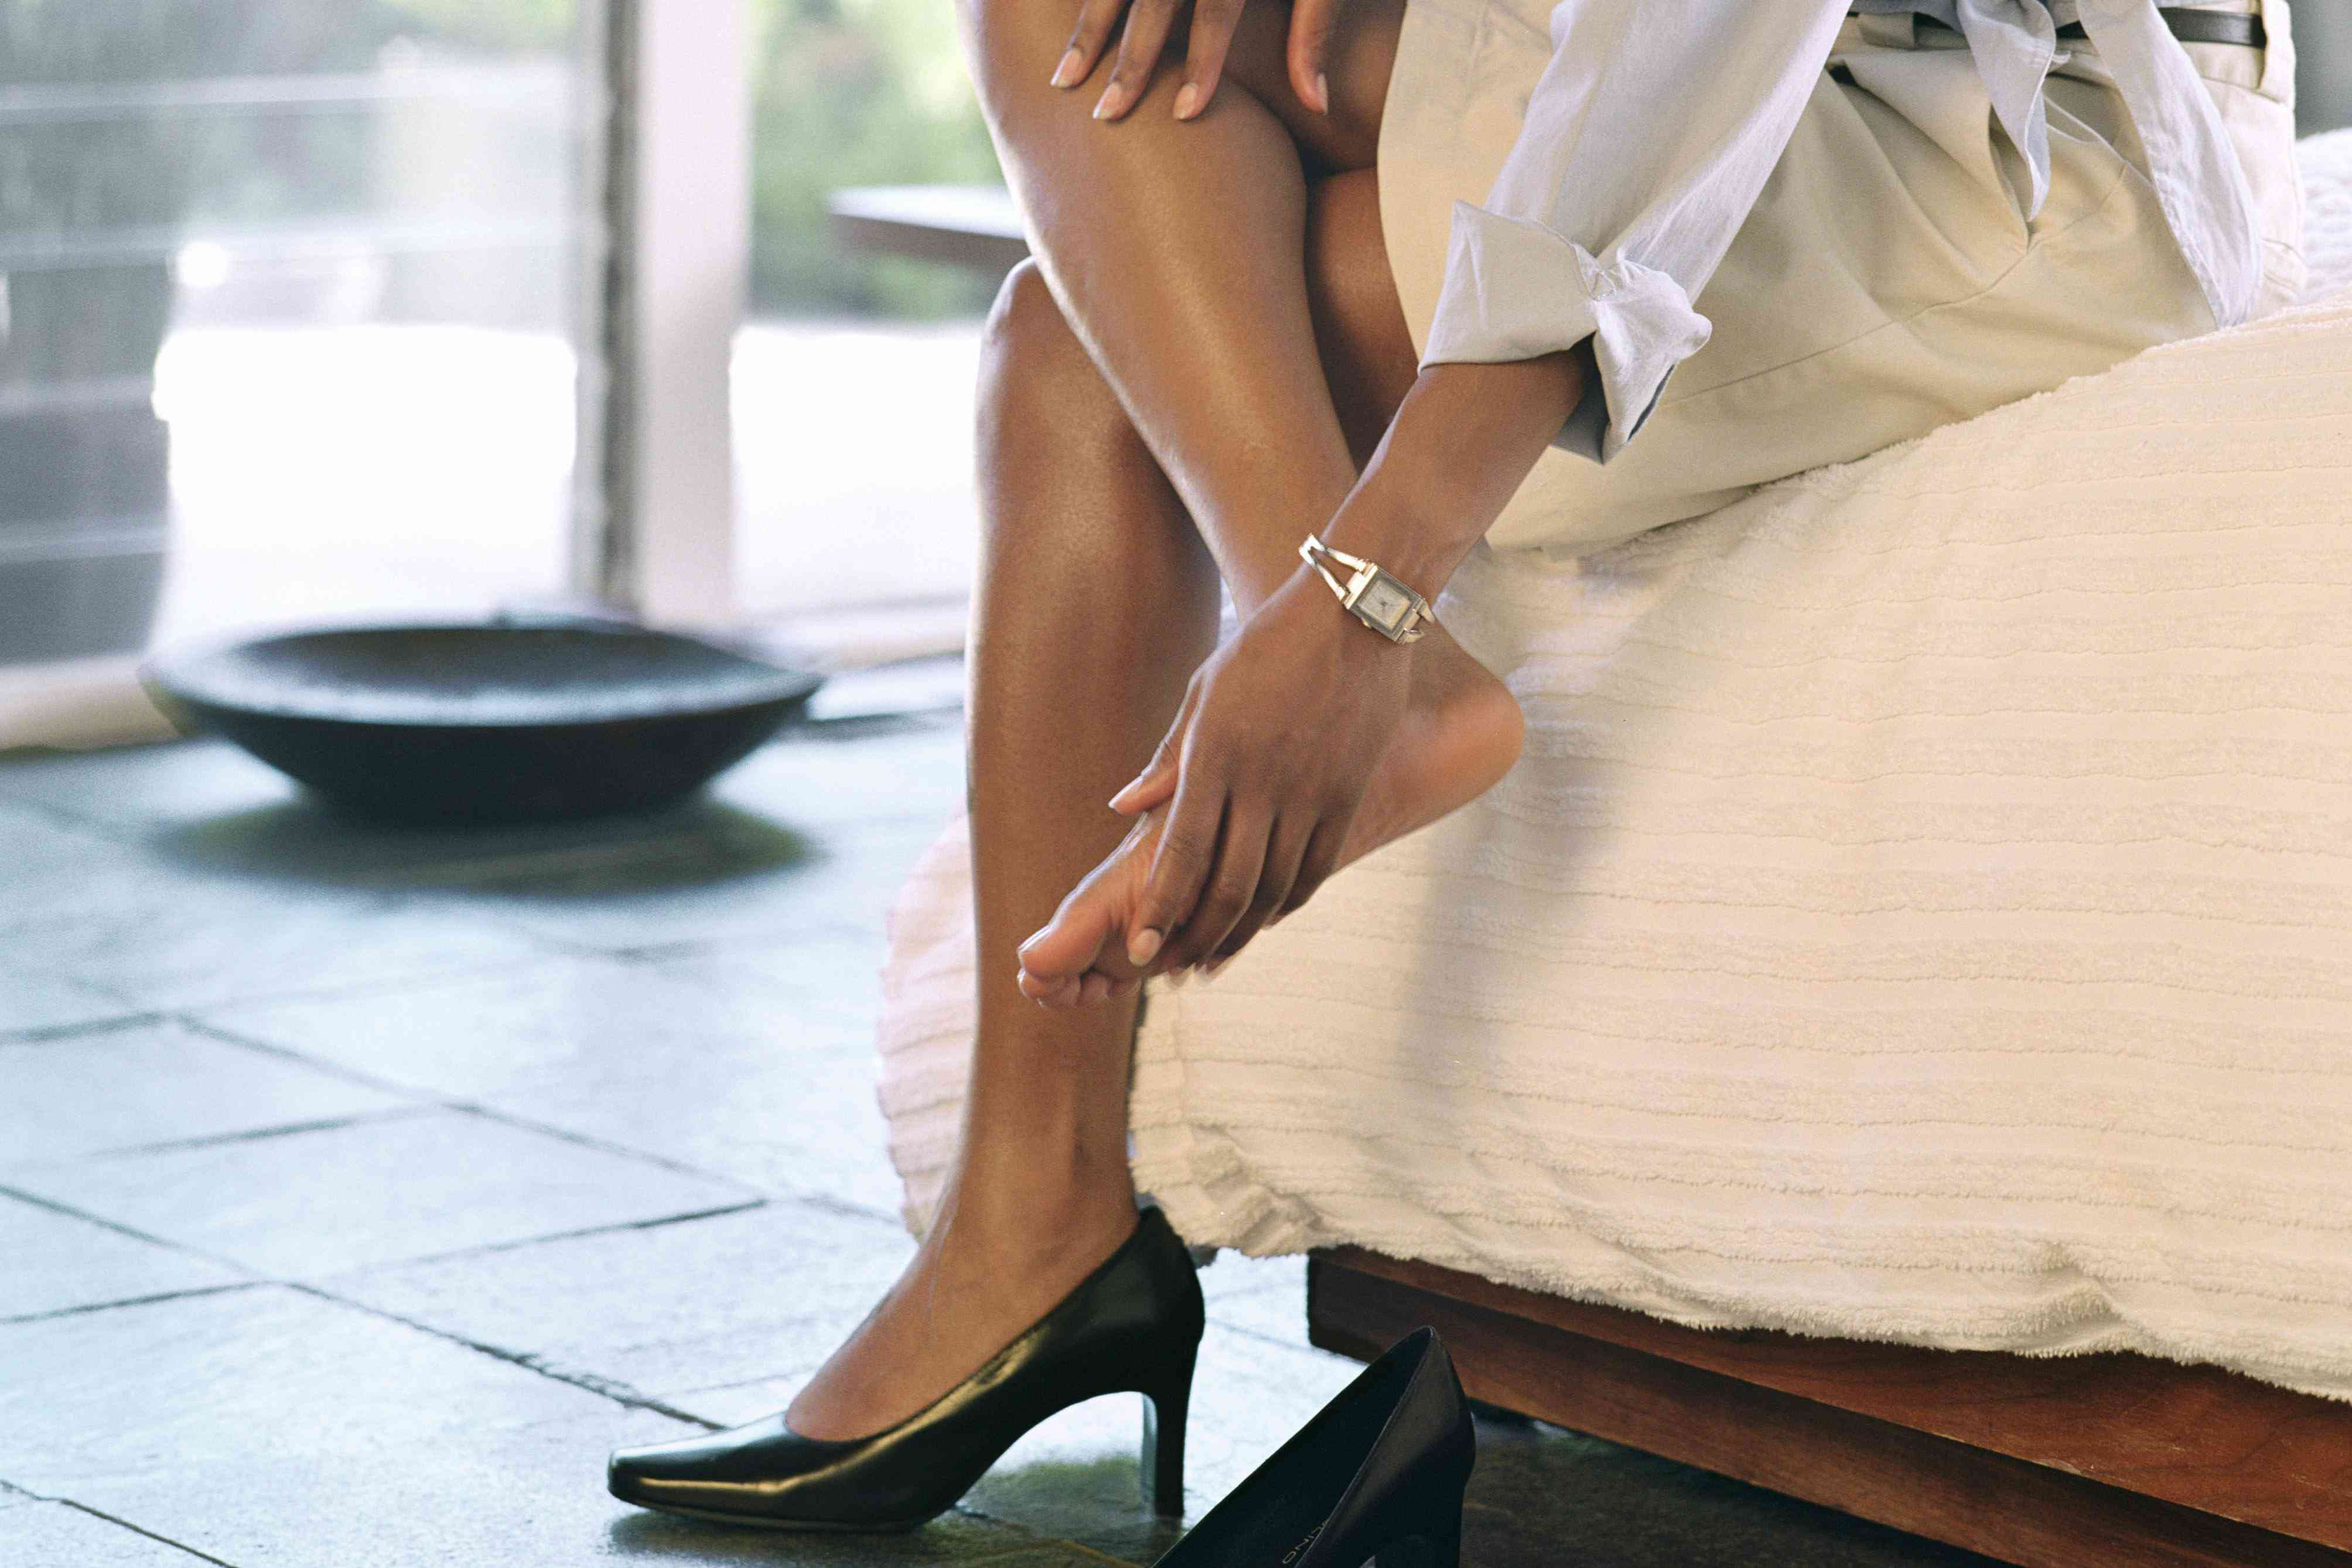 Woman with one high heel off rubbing her foot